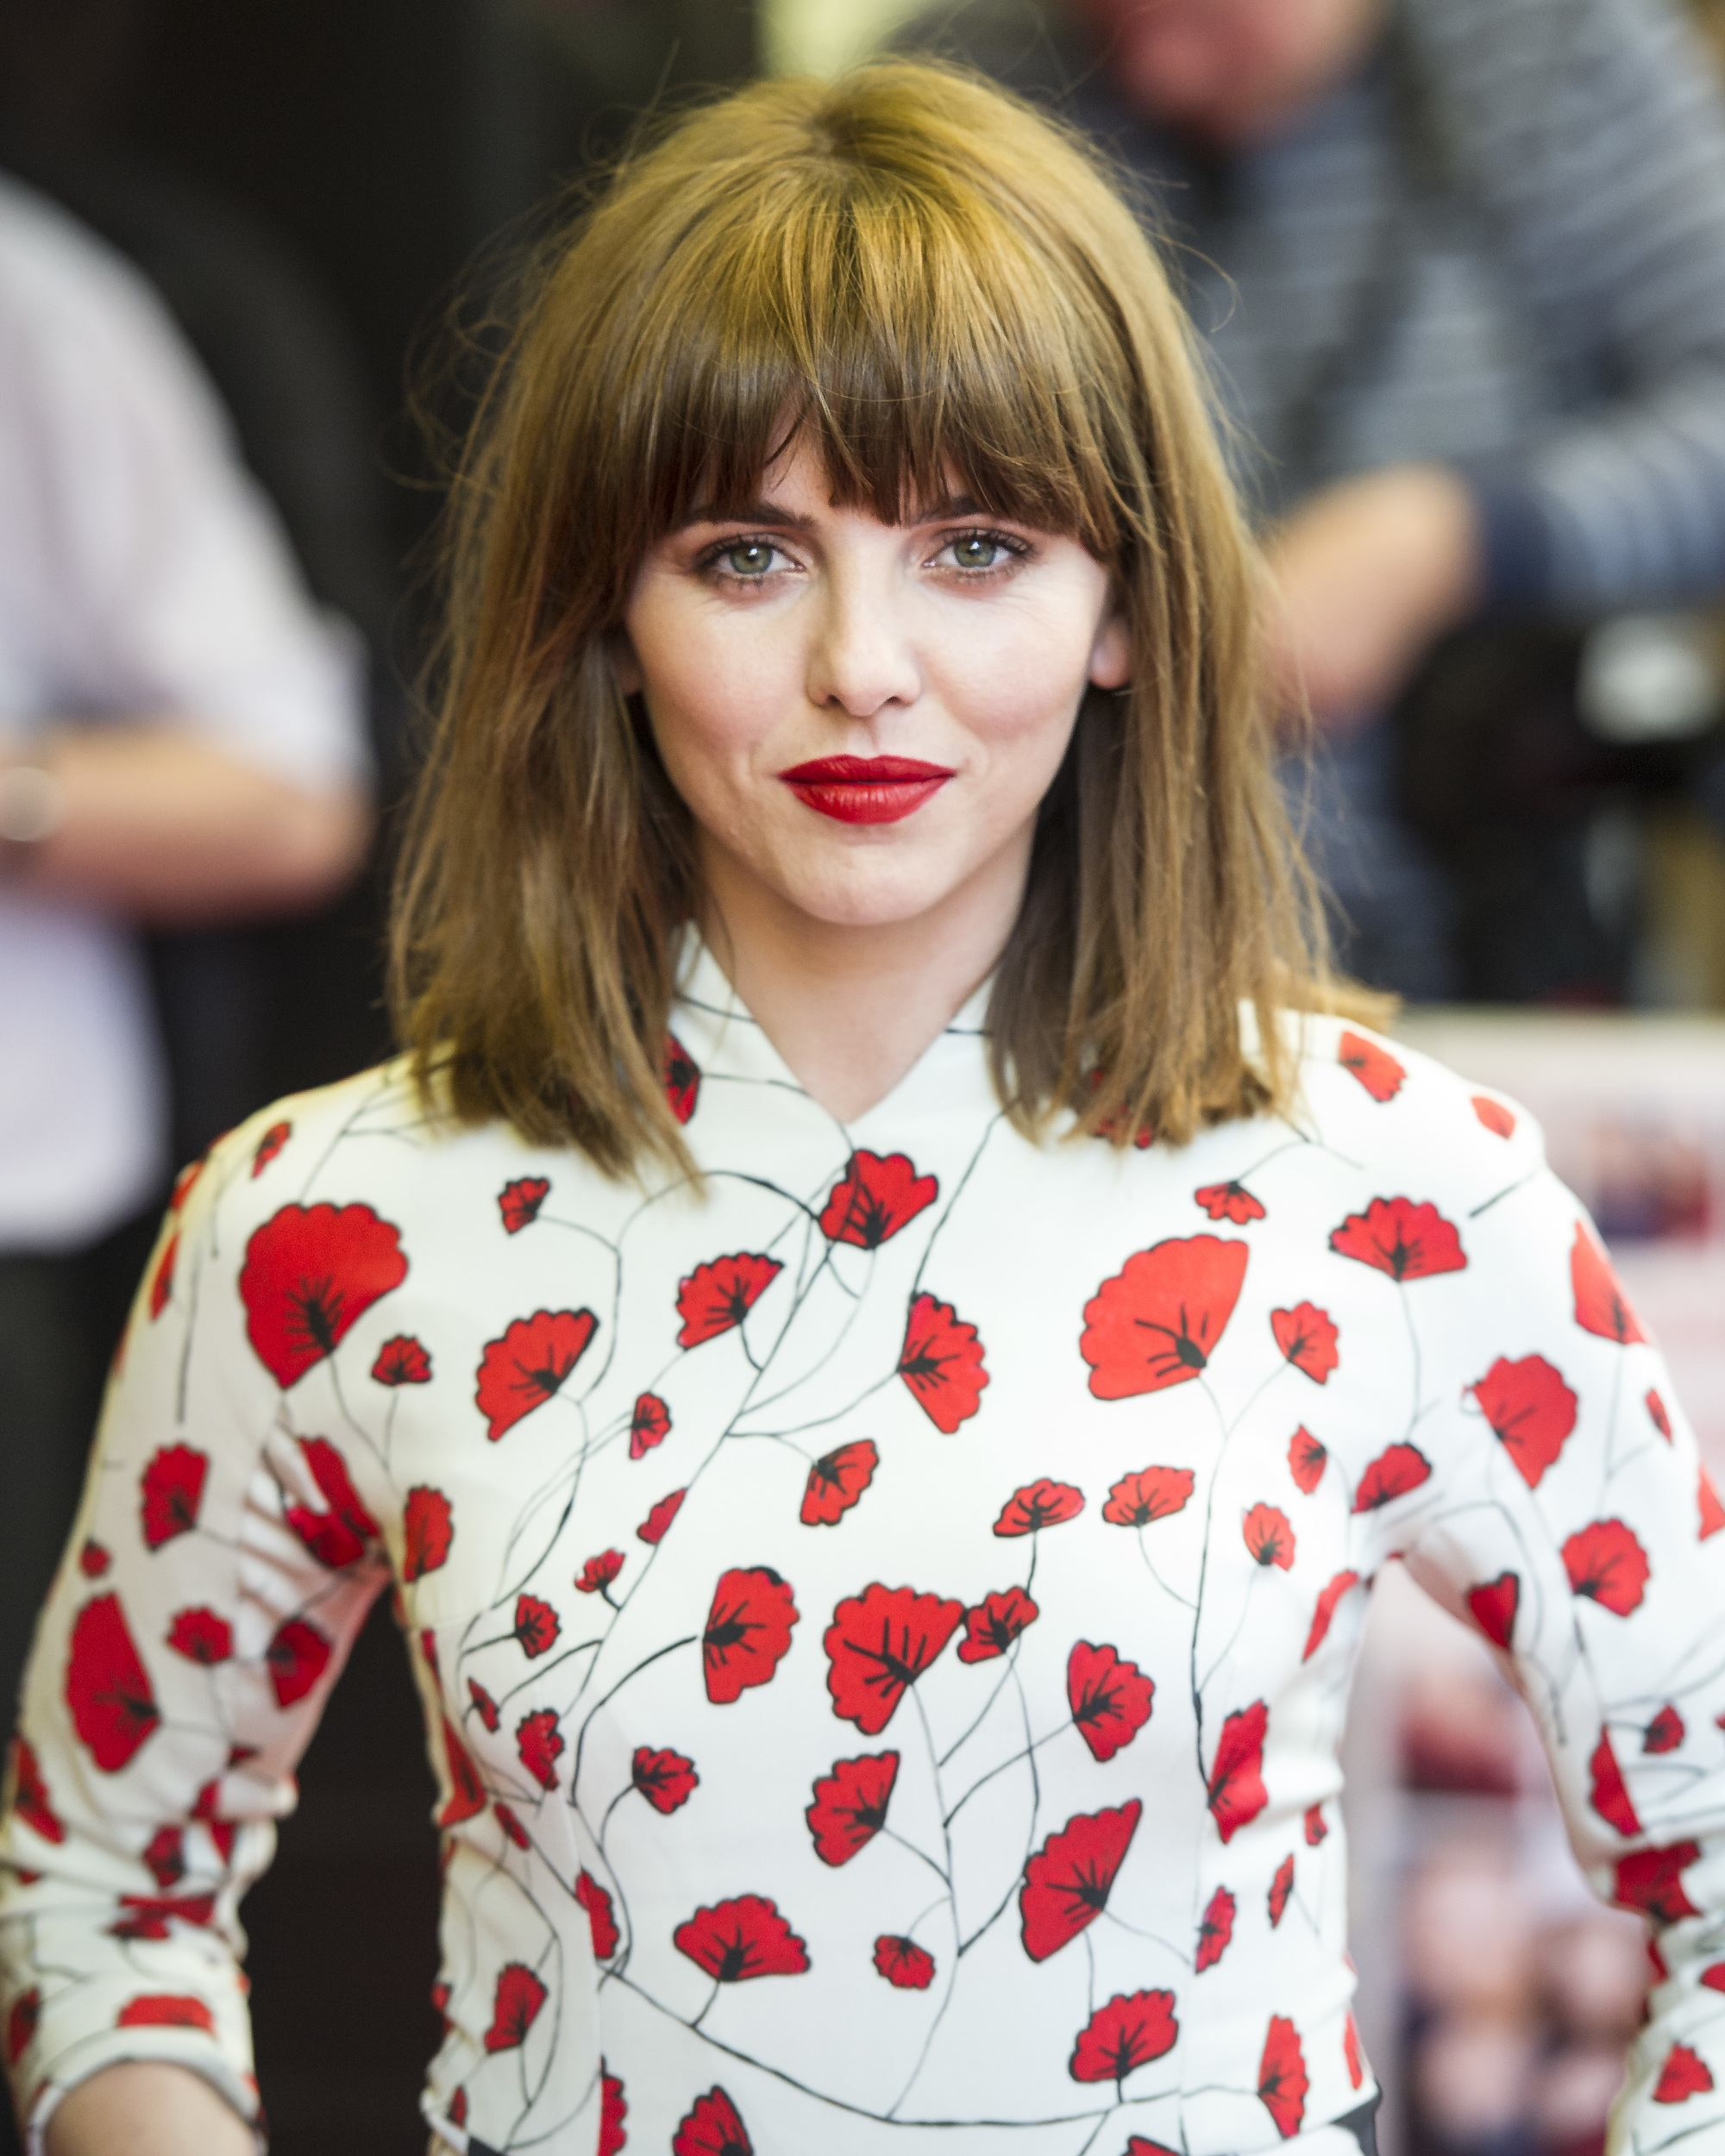 1970s short hairstyles: ophelia lovibond with 70s-inspired long bangs and short medium bob hairstyle